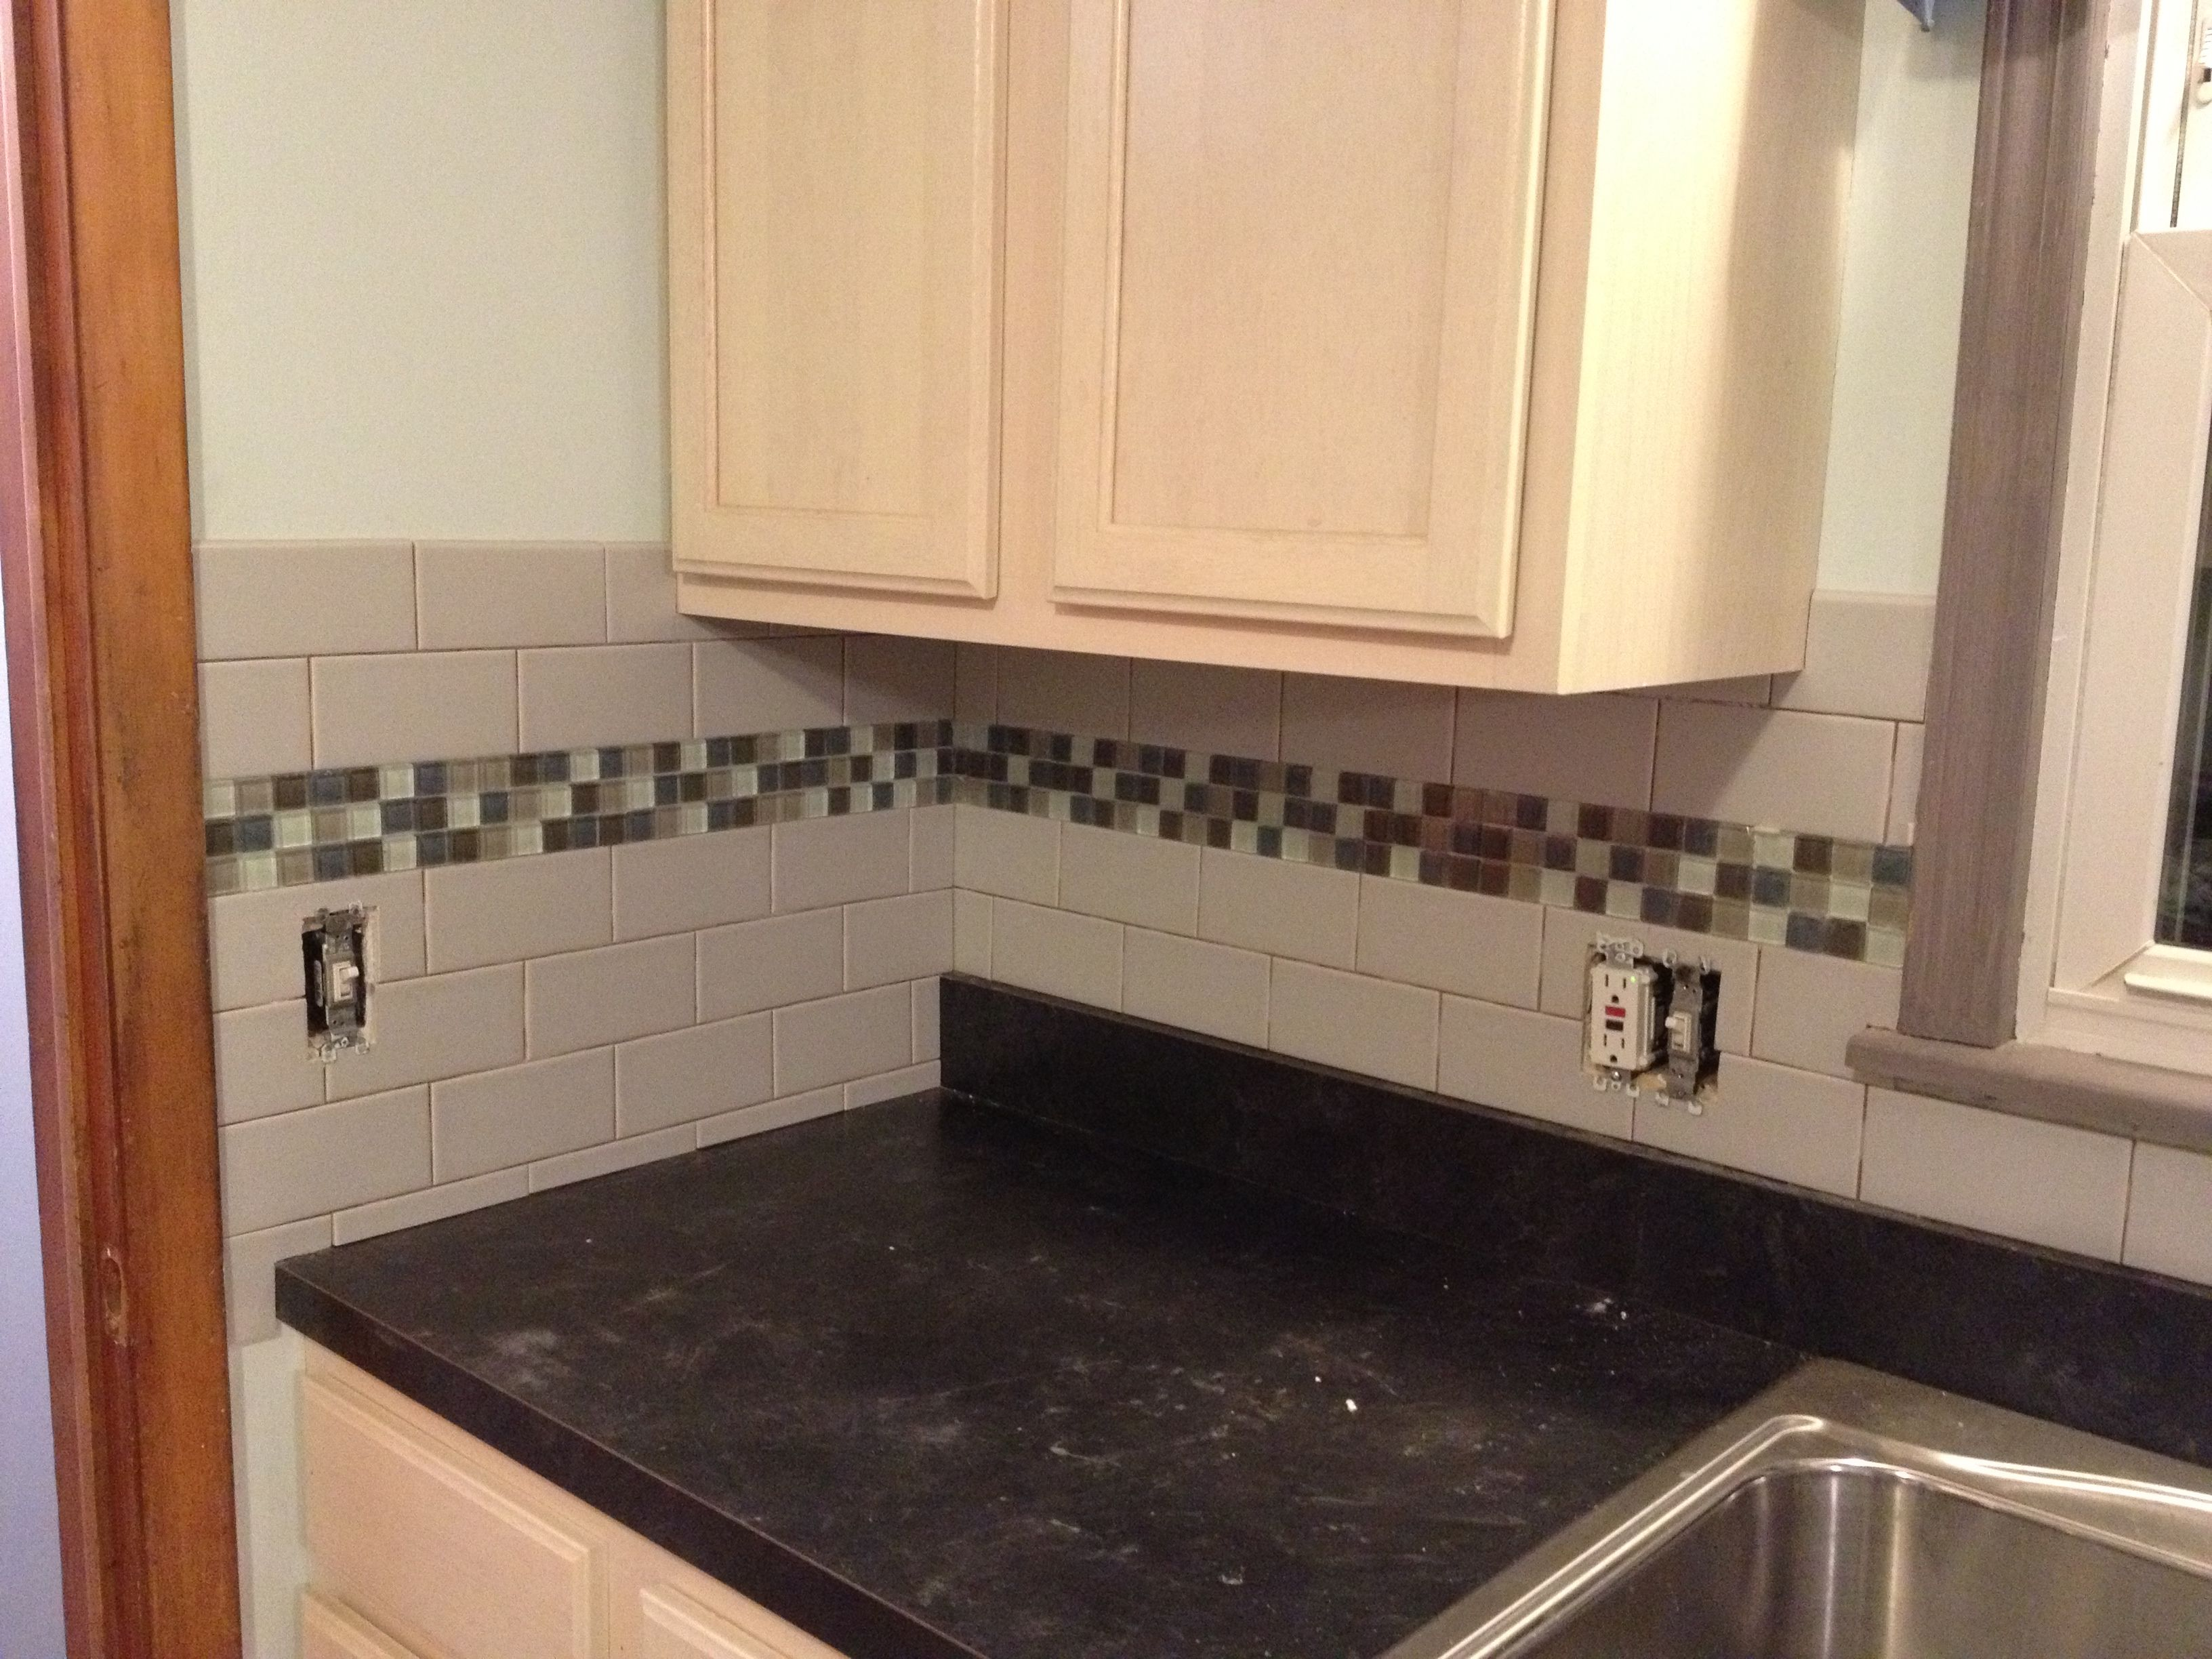 Subway Tile Backsplash With Glass Tile Accent Love My